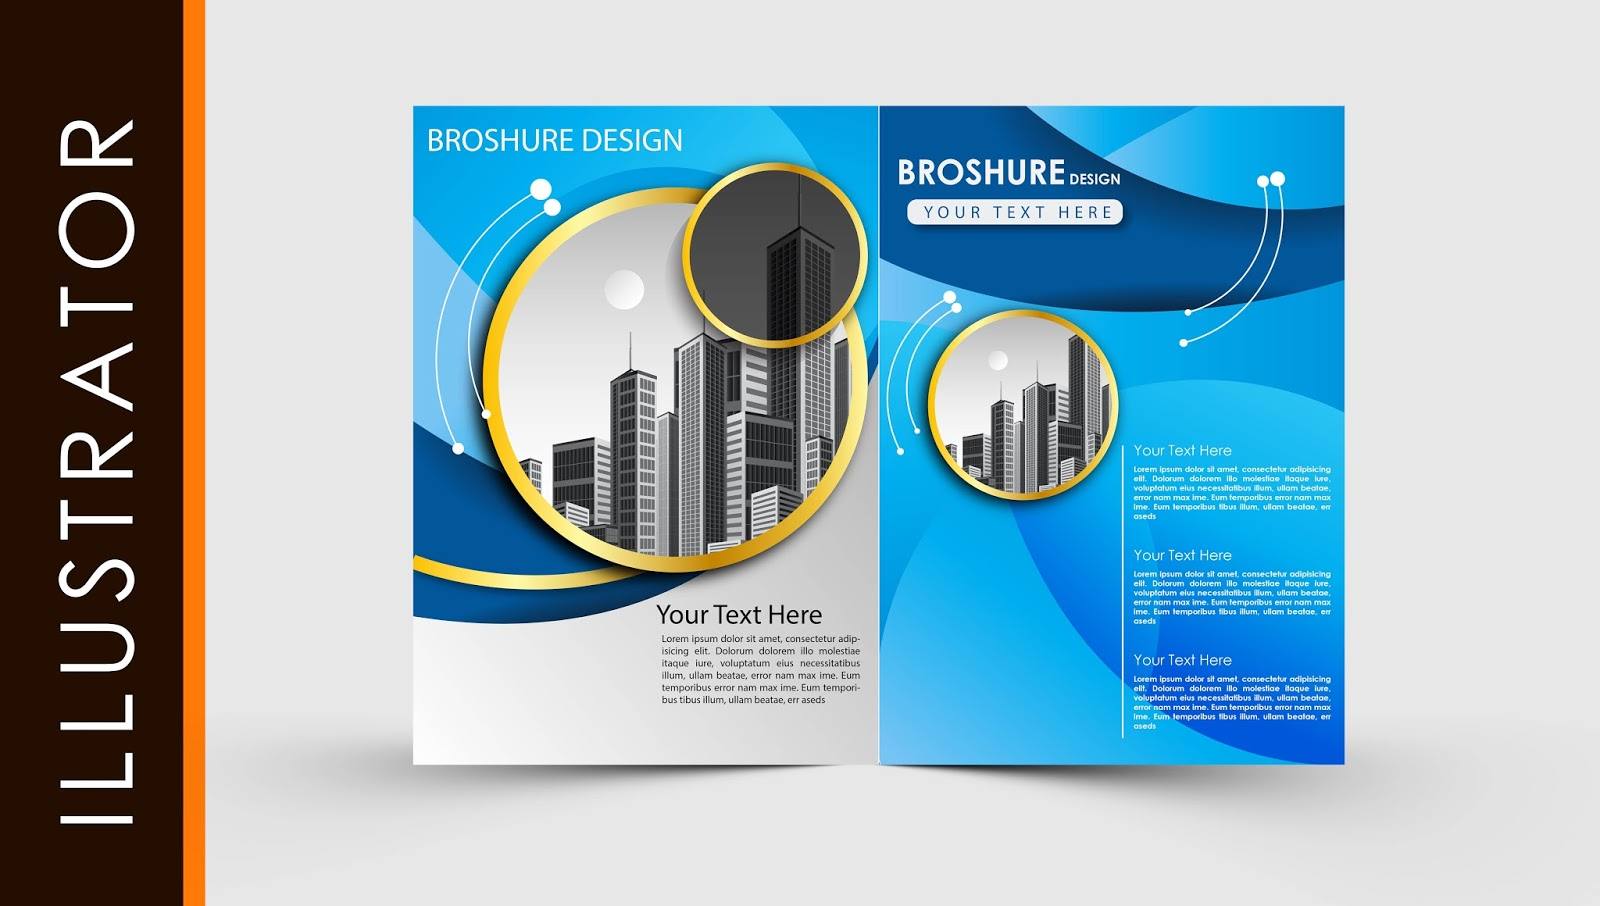 Free Download Adobe Illustrator Template Brochure Two Fold Throughout Brochure Templates Adobe Illustrator